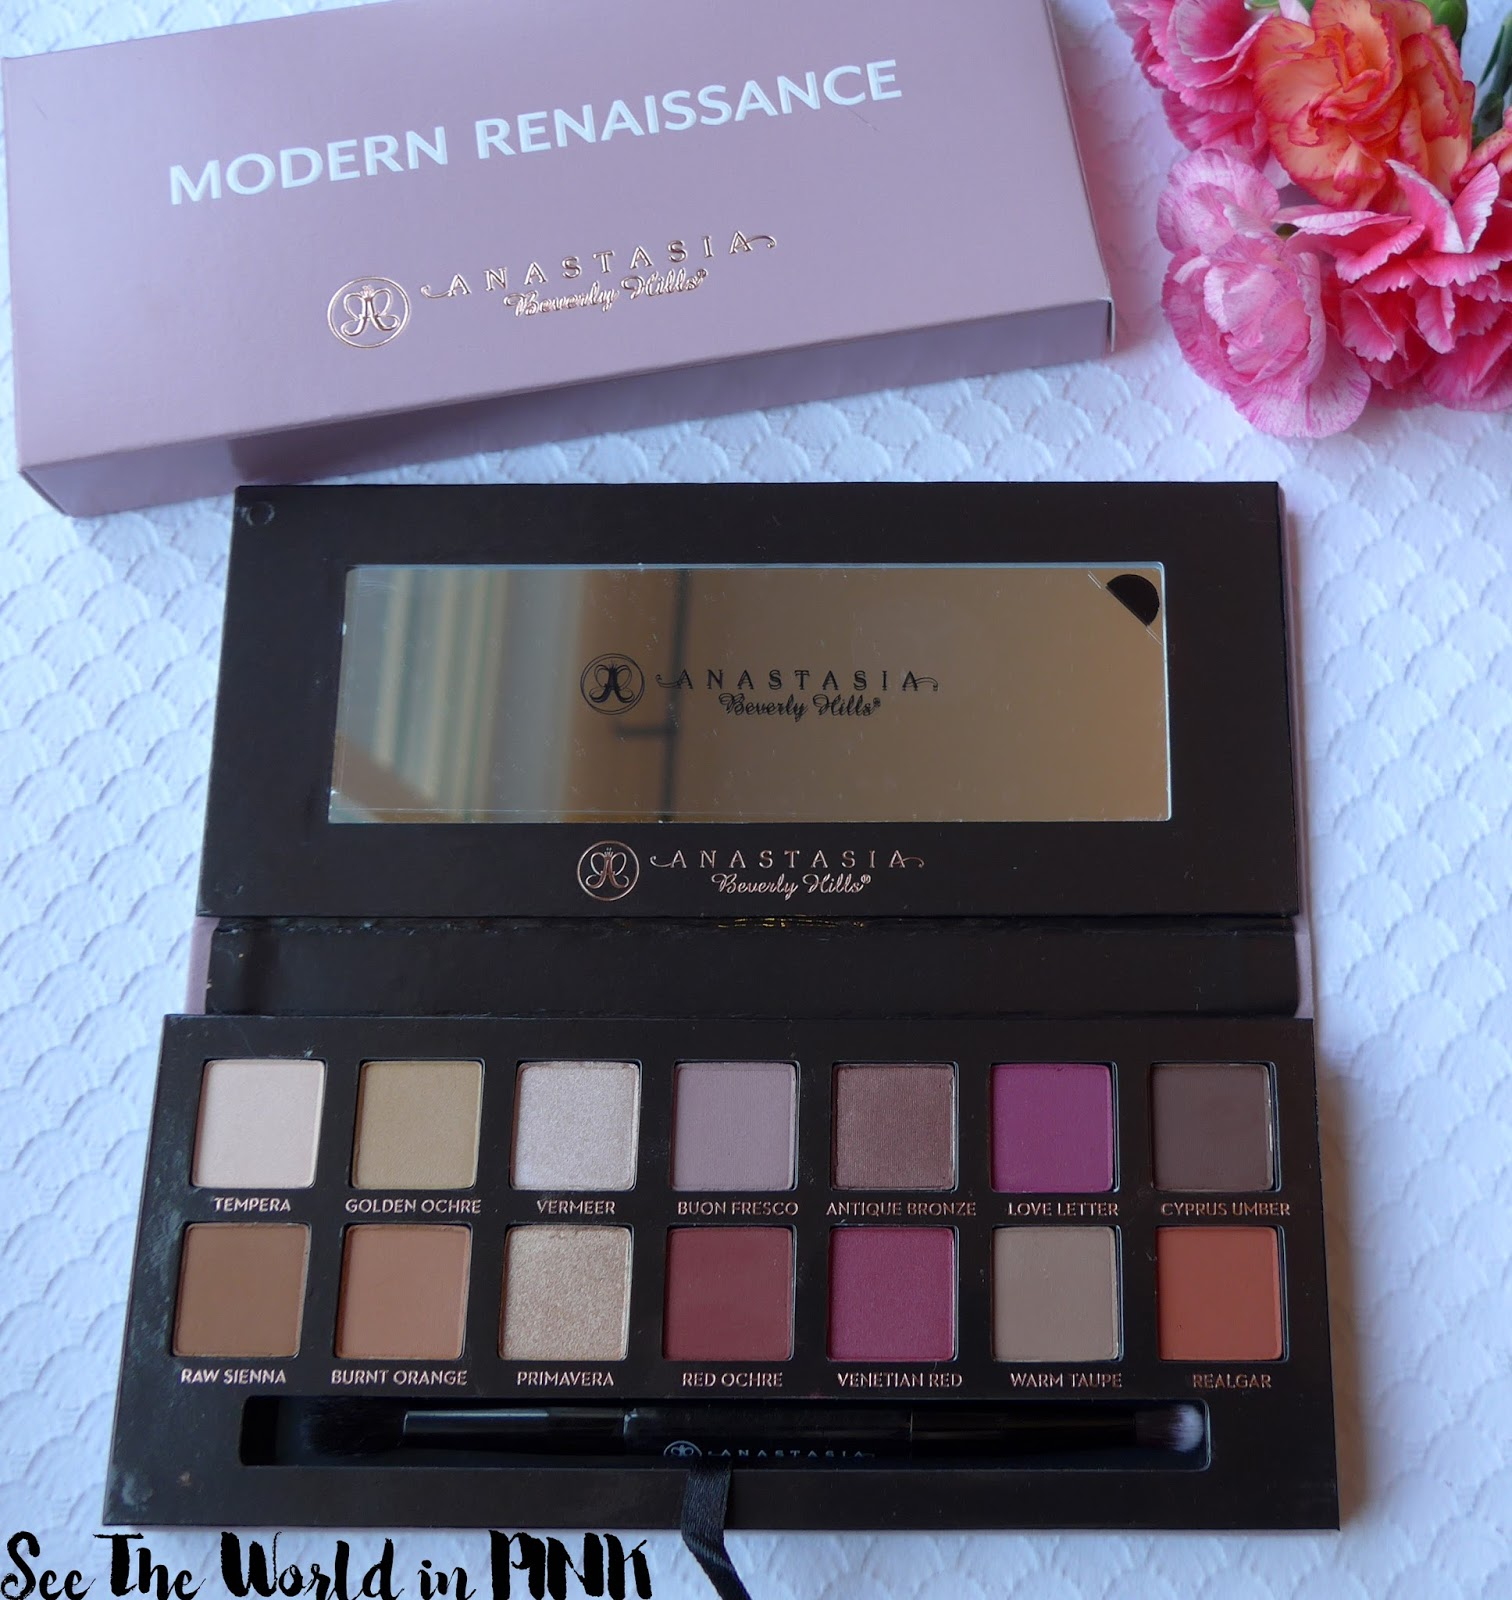 Anastasia Beverly Hills Modern Renaissance Palette - Swatches, Makeup Looks, and Review!